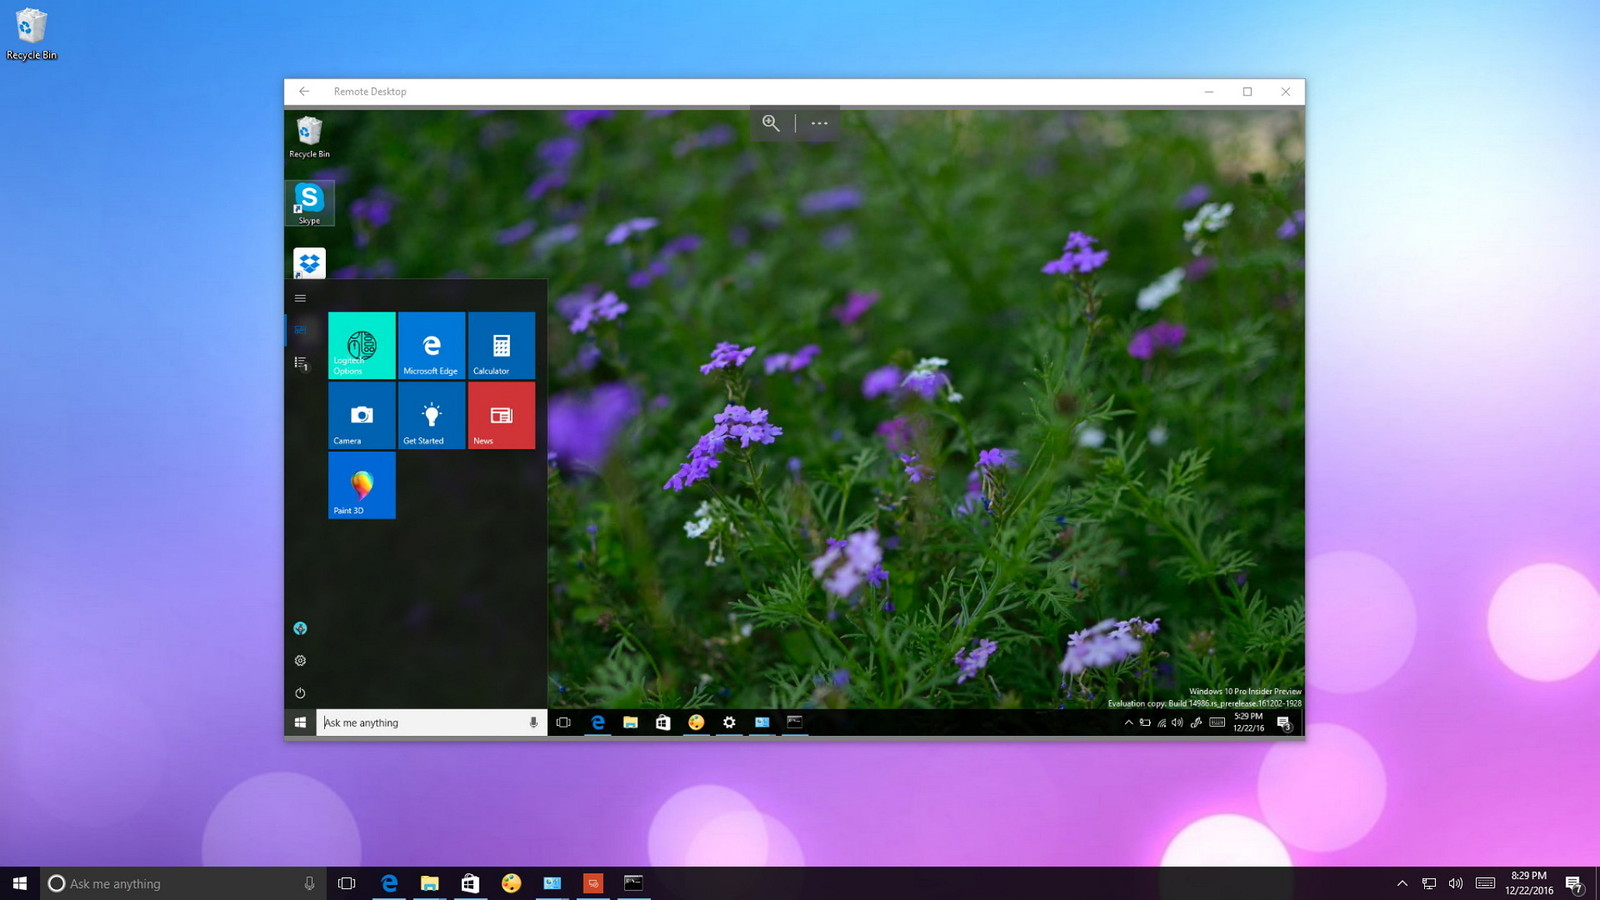 6 Apps to control your Windows 10 PC from Android